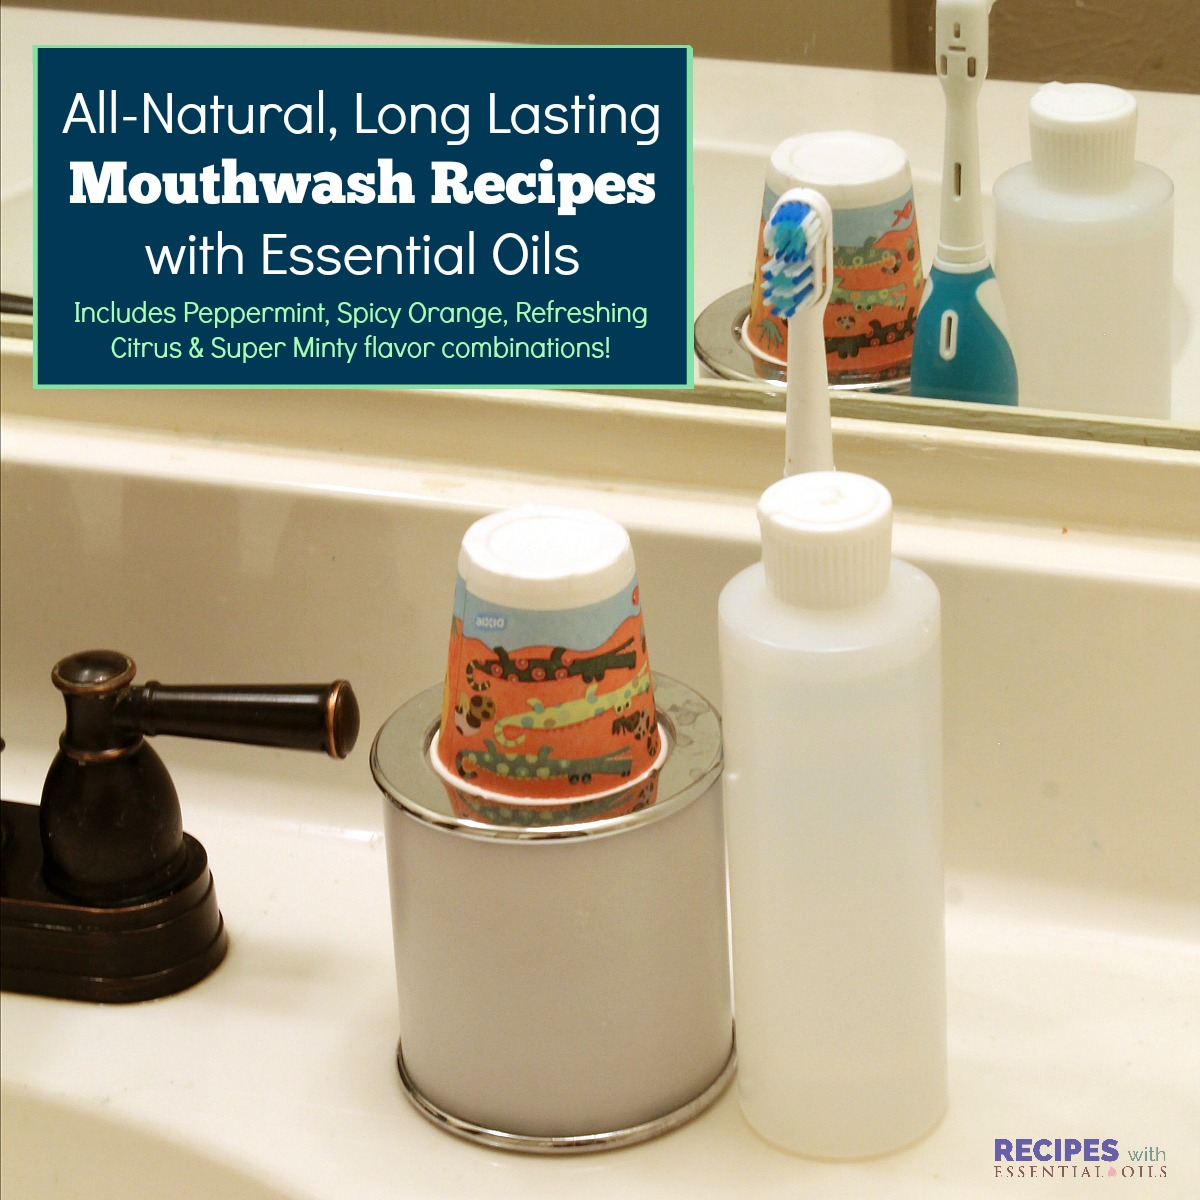 How To Make Natural Mouthwash With Essential Oils